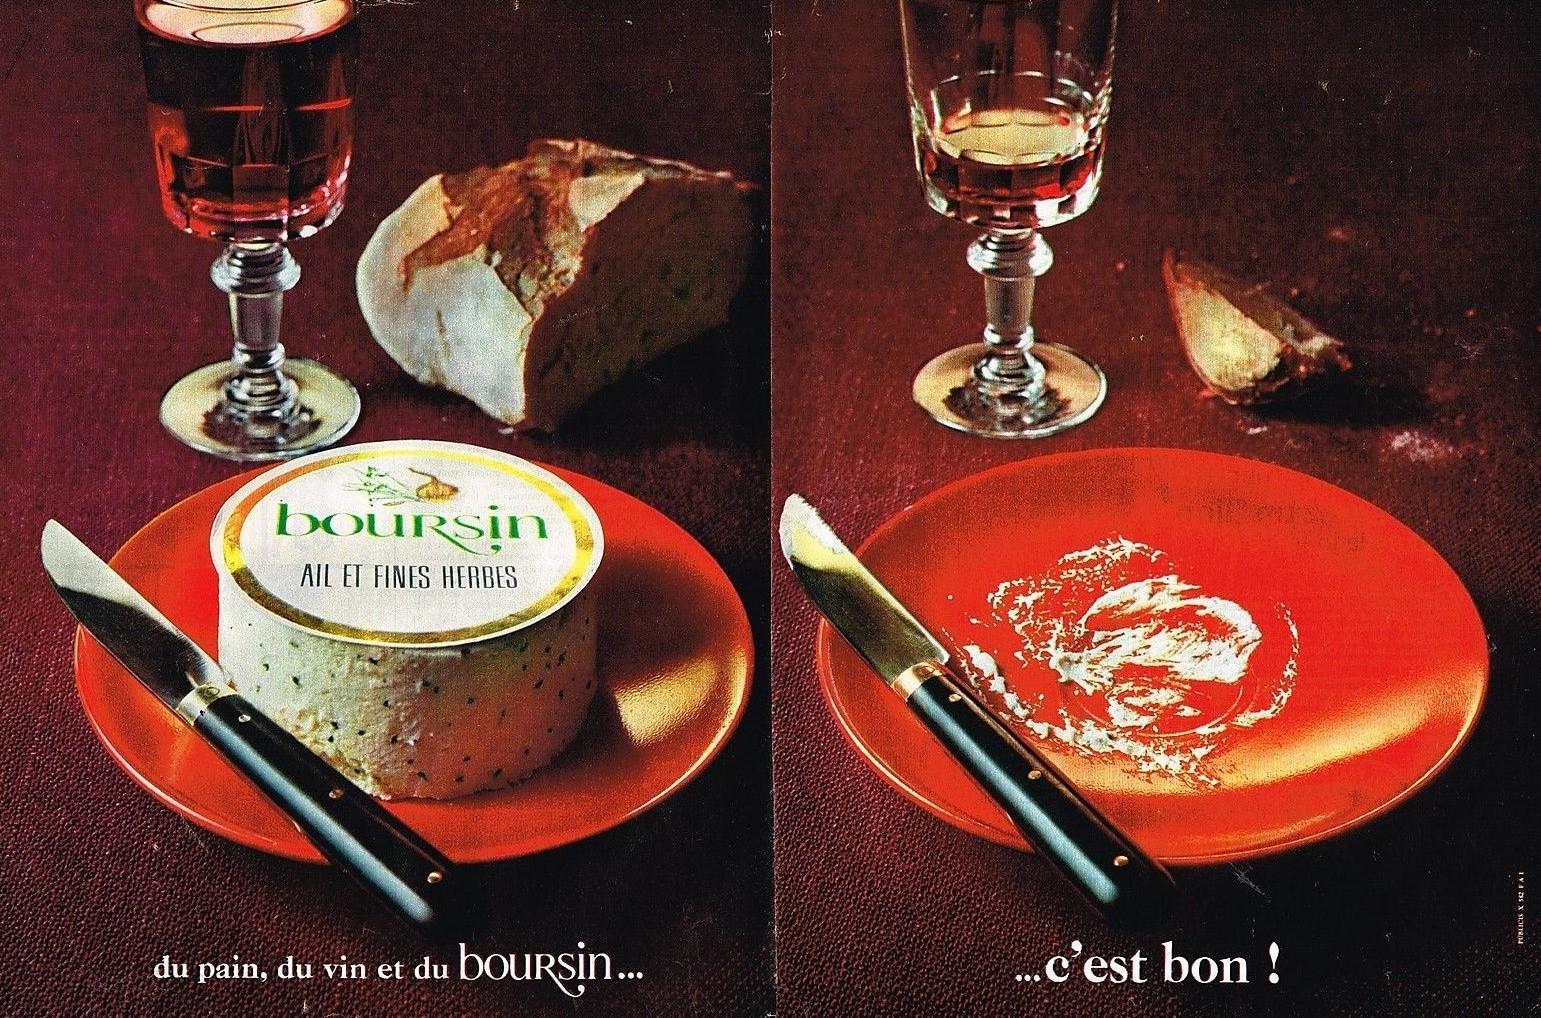 1967 Fromage Boursin Ail et Fines Herbes